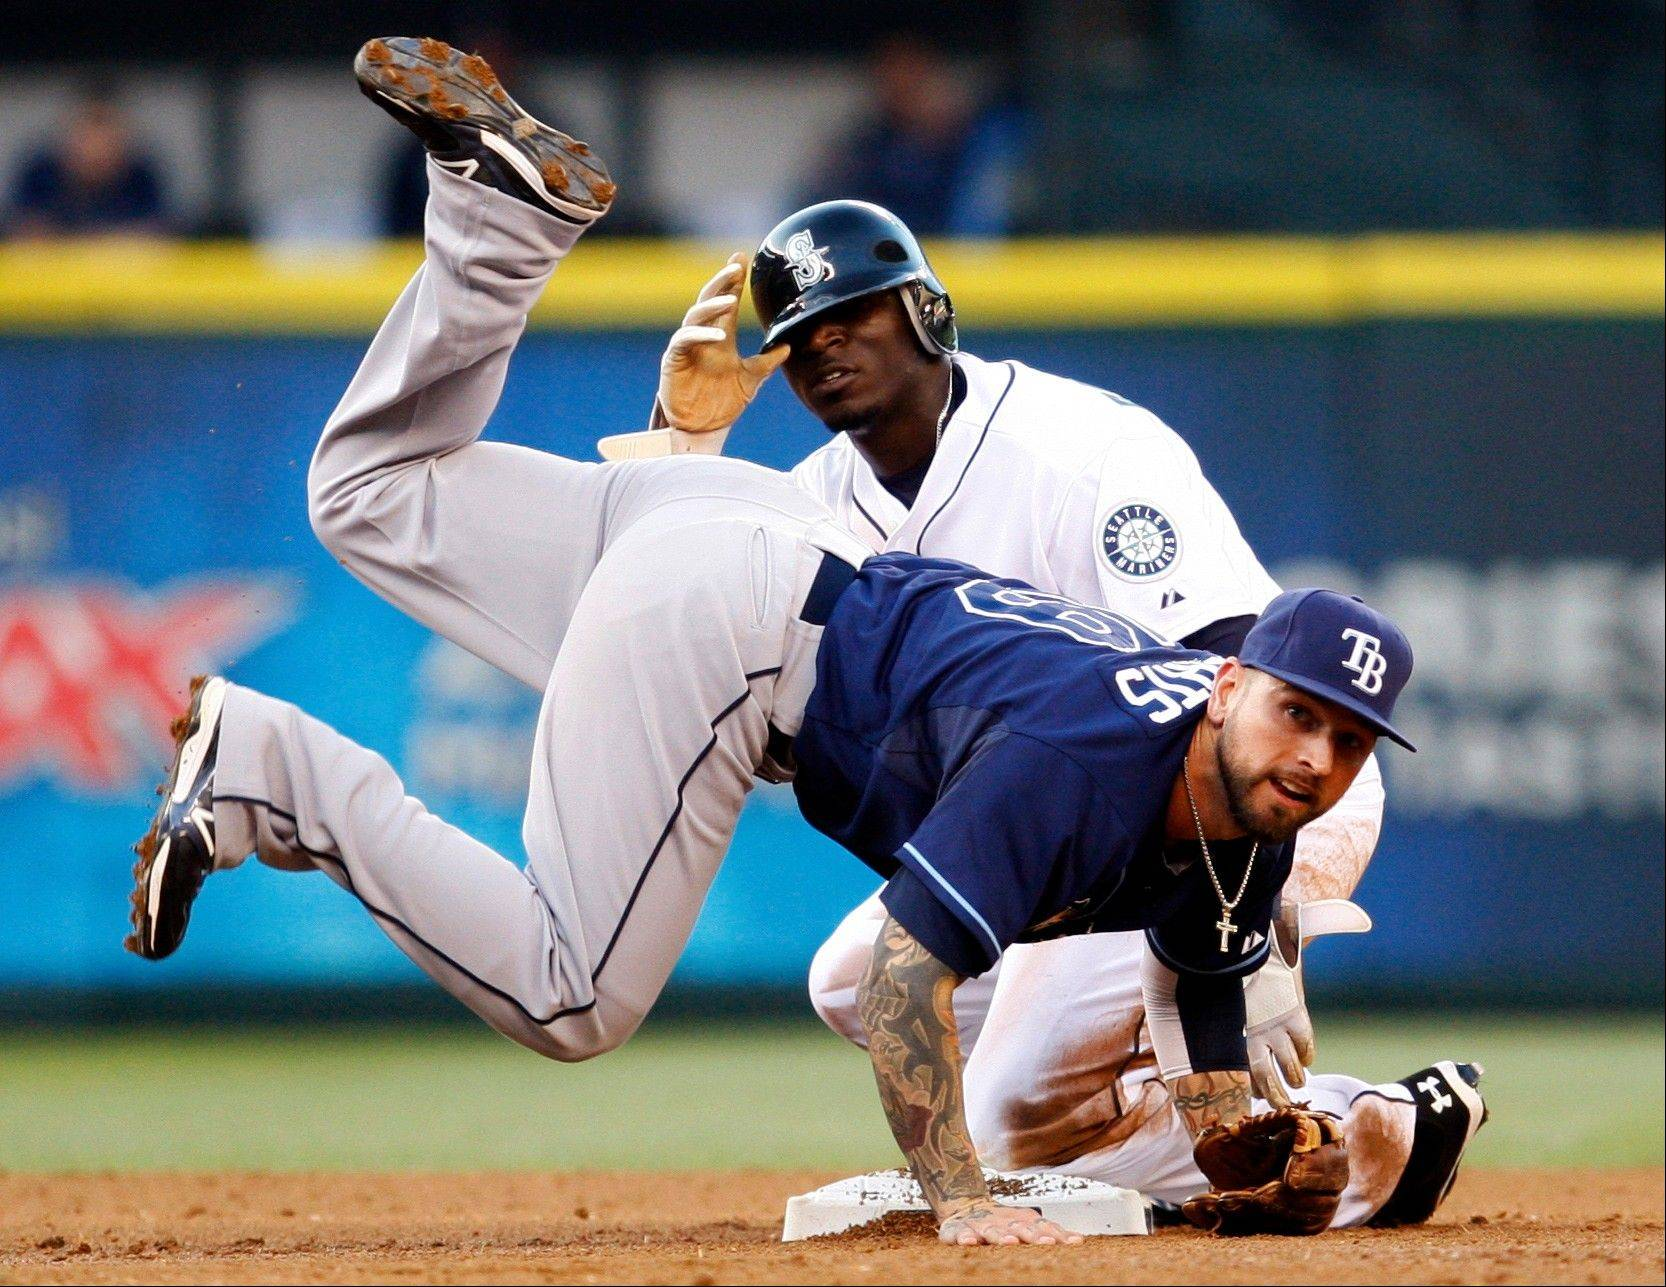 Tampa Bay second baseman Ryan Roberts jumps over the Mariners� Trayvon Robinson as he completes his throw to first base for a double play Tuesday night in Seattle.